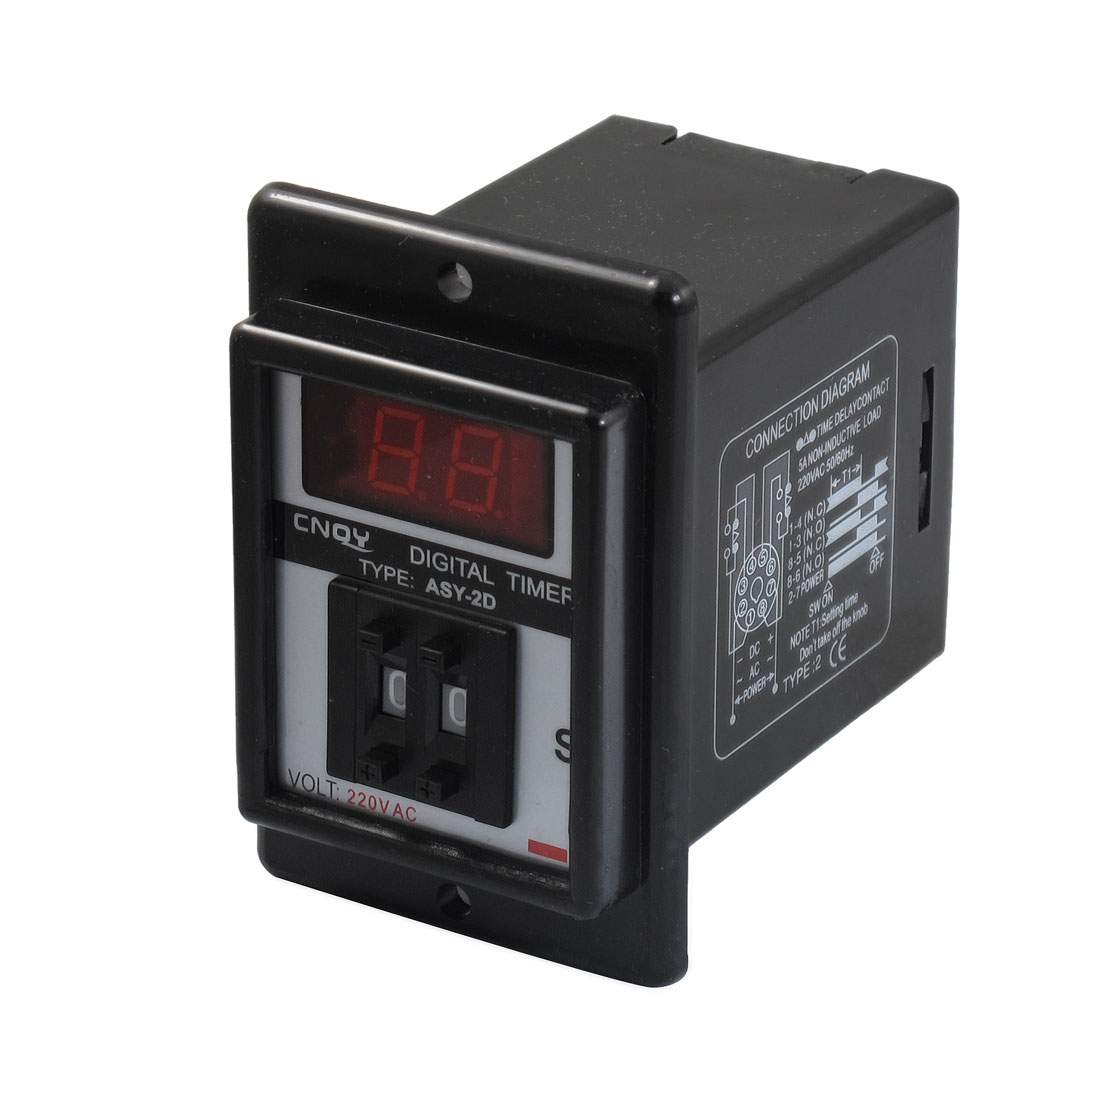 AC 220V 0.1-9.9 Second Digital Timer Time Delay Relay 8 Pin ASY-2D